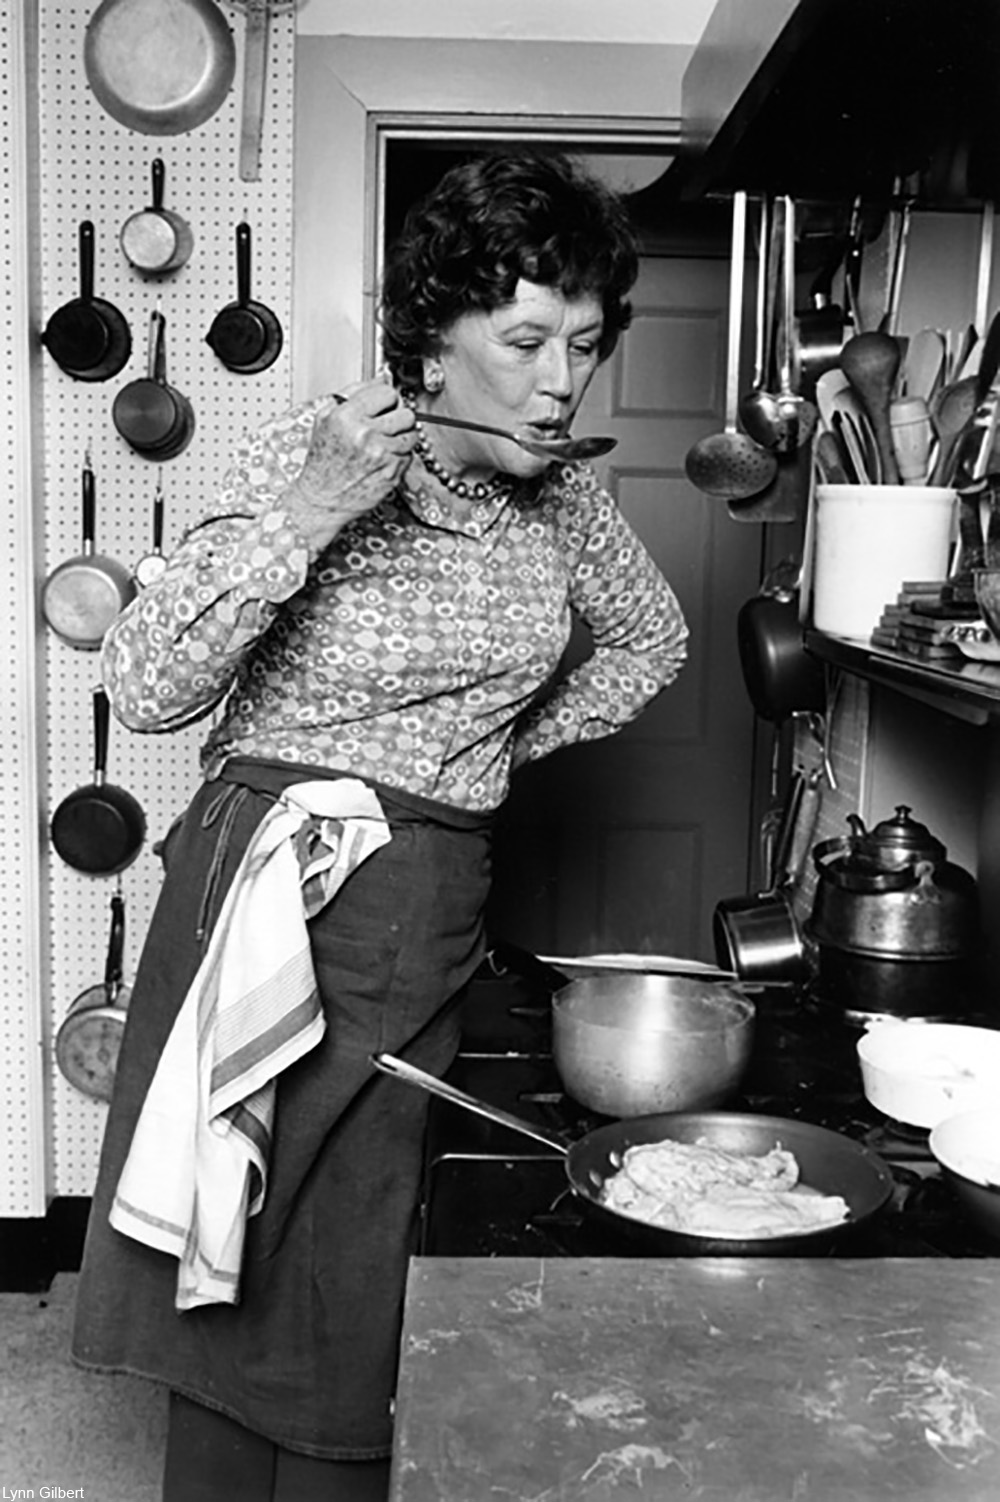 publicity photo of Julia Child in her Cambridge kitchen in the 1970s